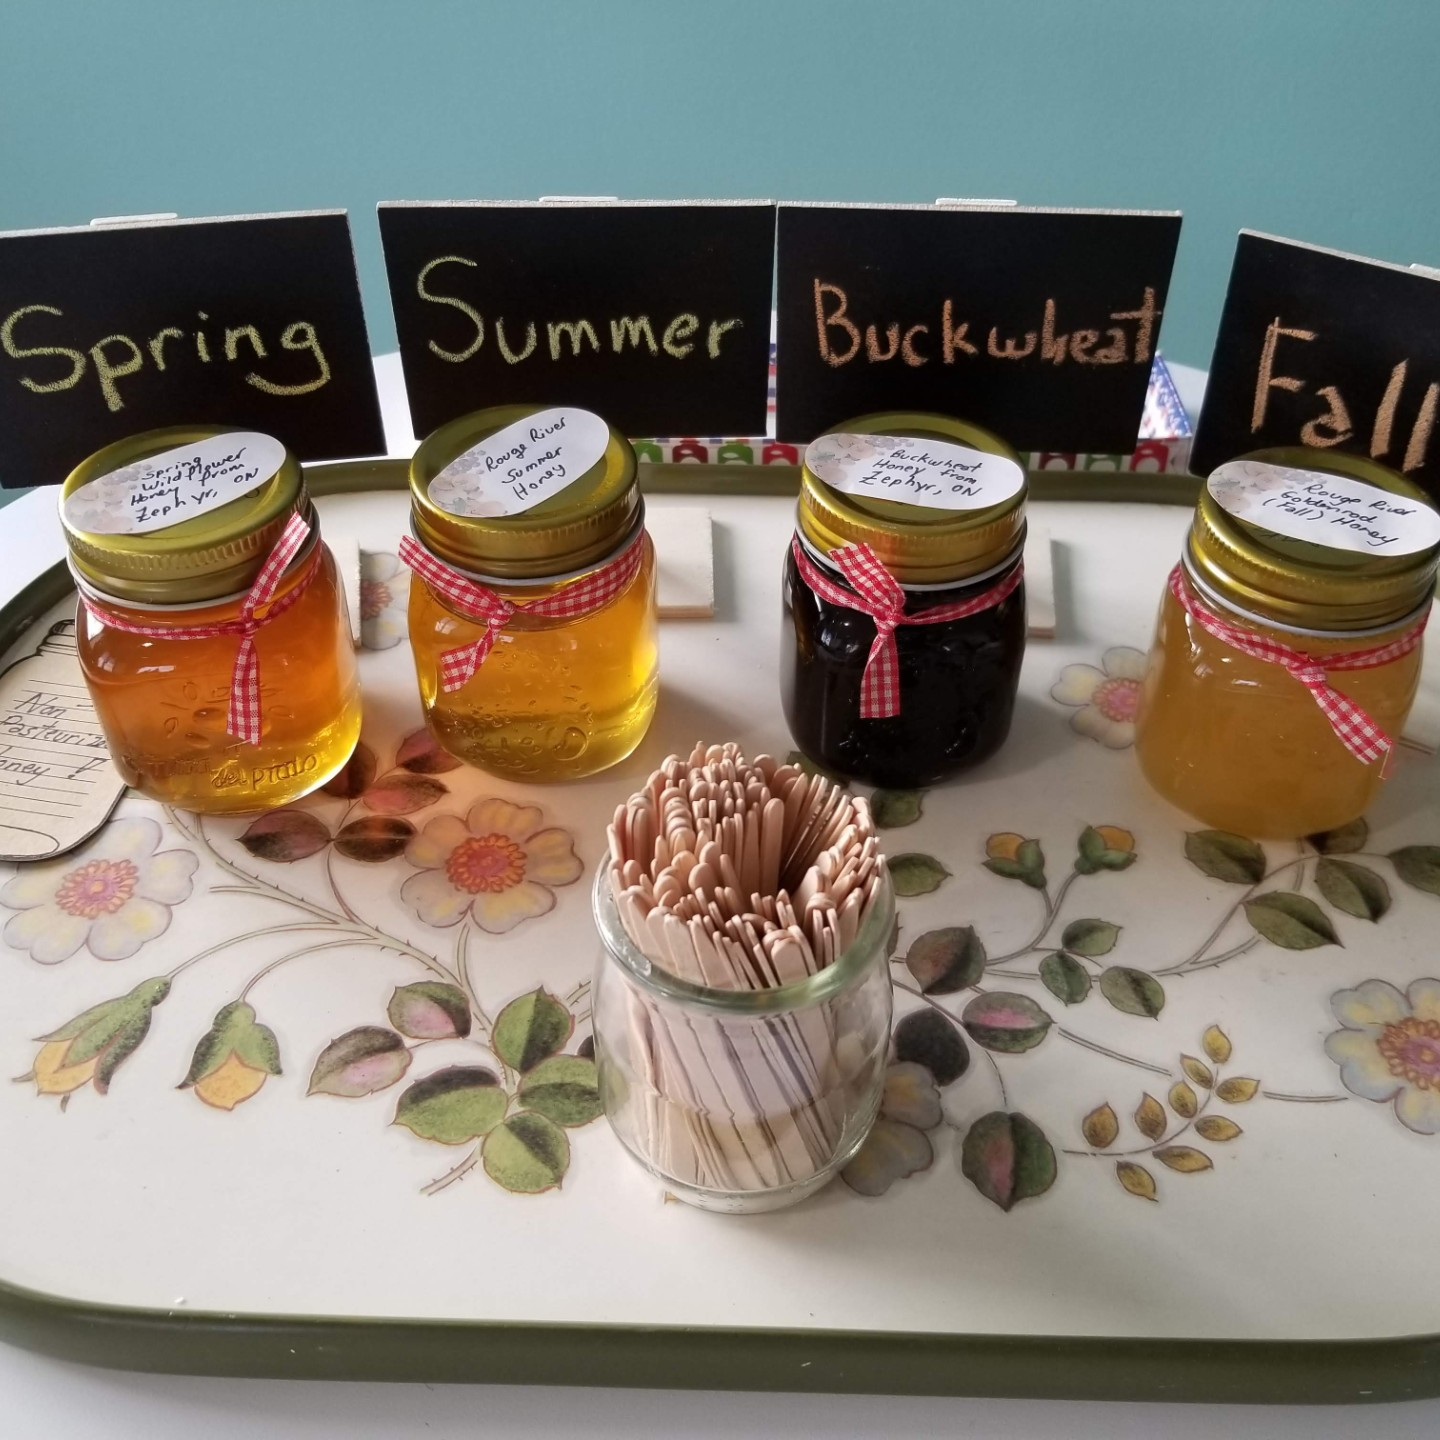 A chance to sample different local honey flavours while learning about what plants attract bees.